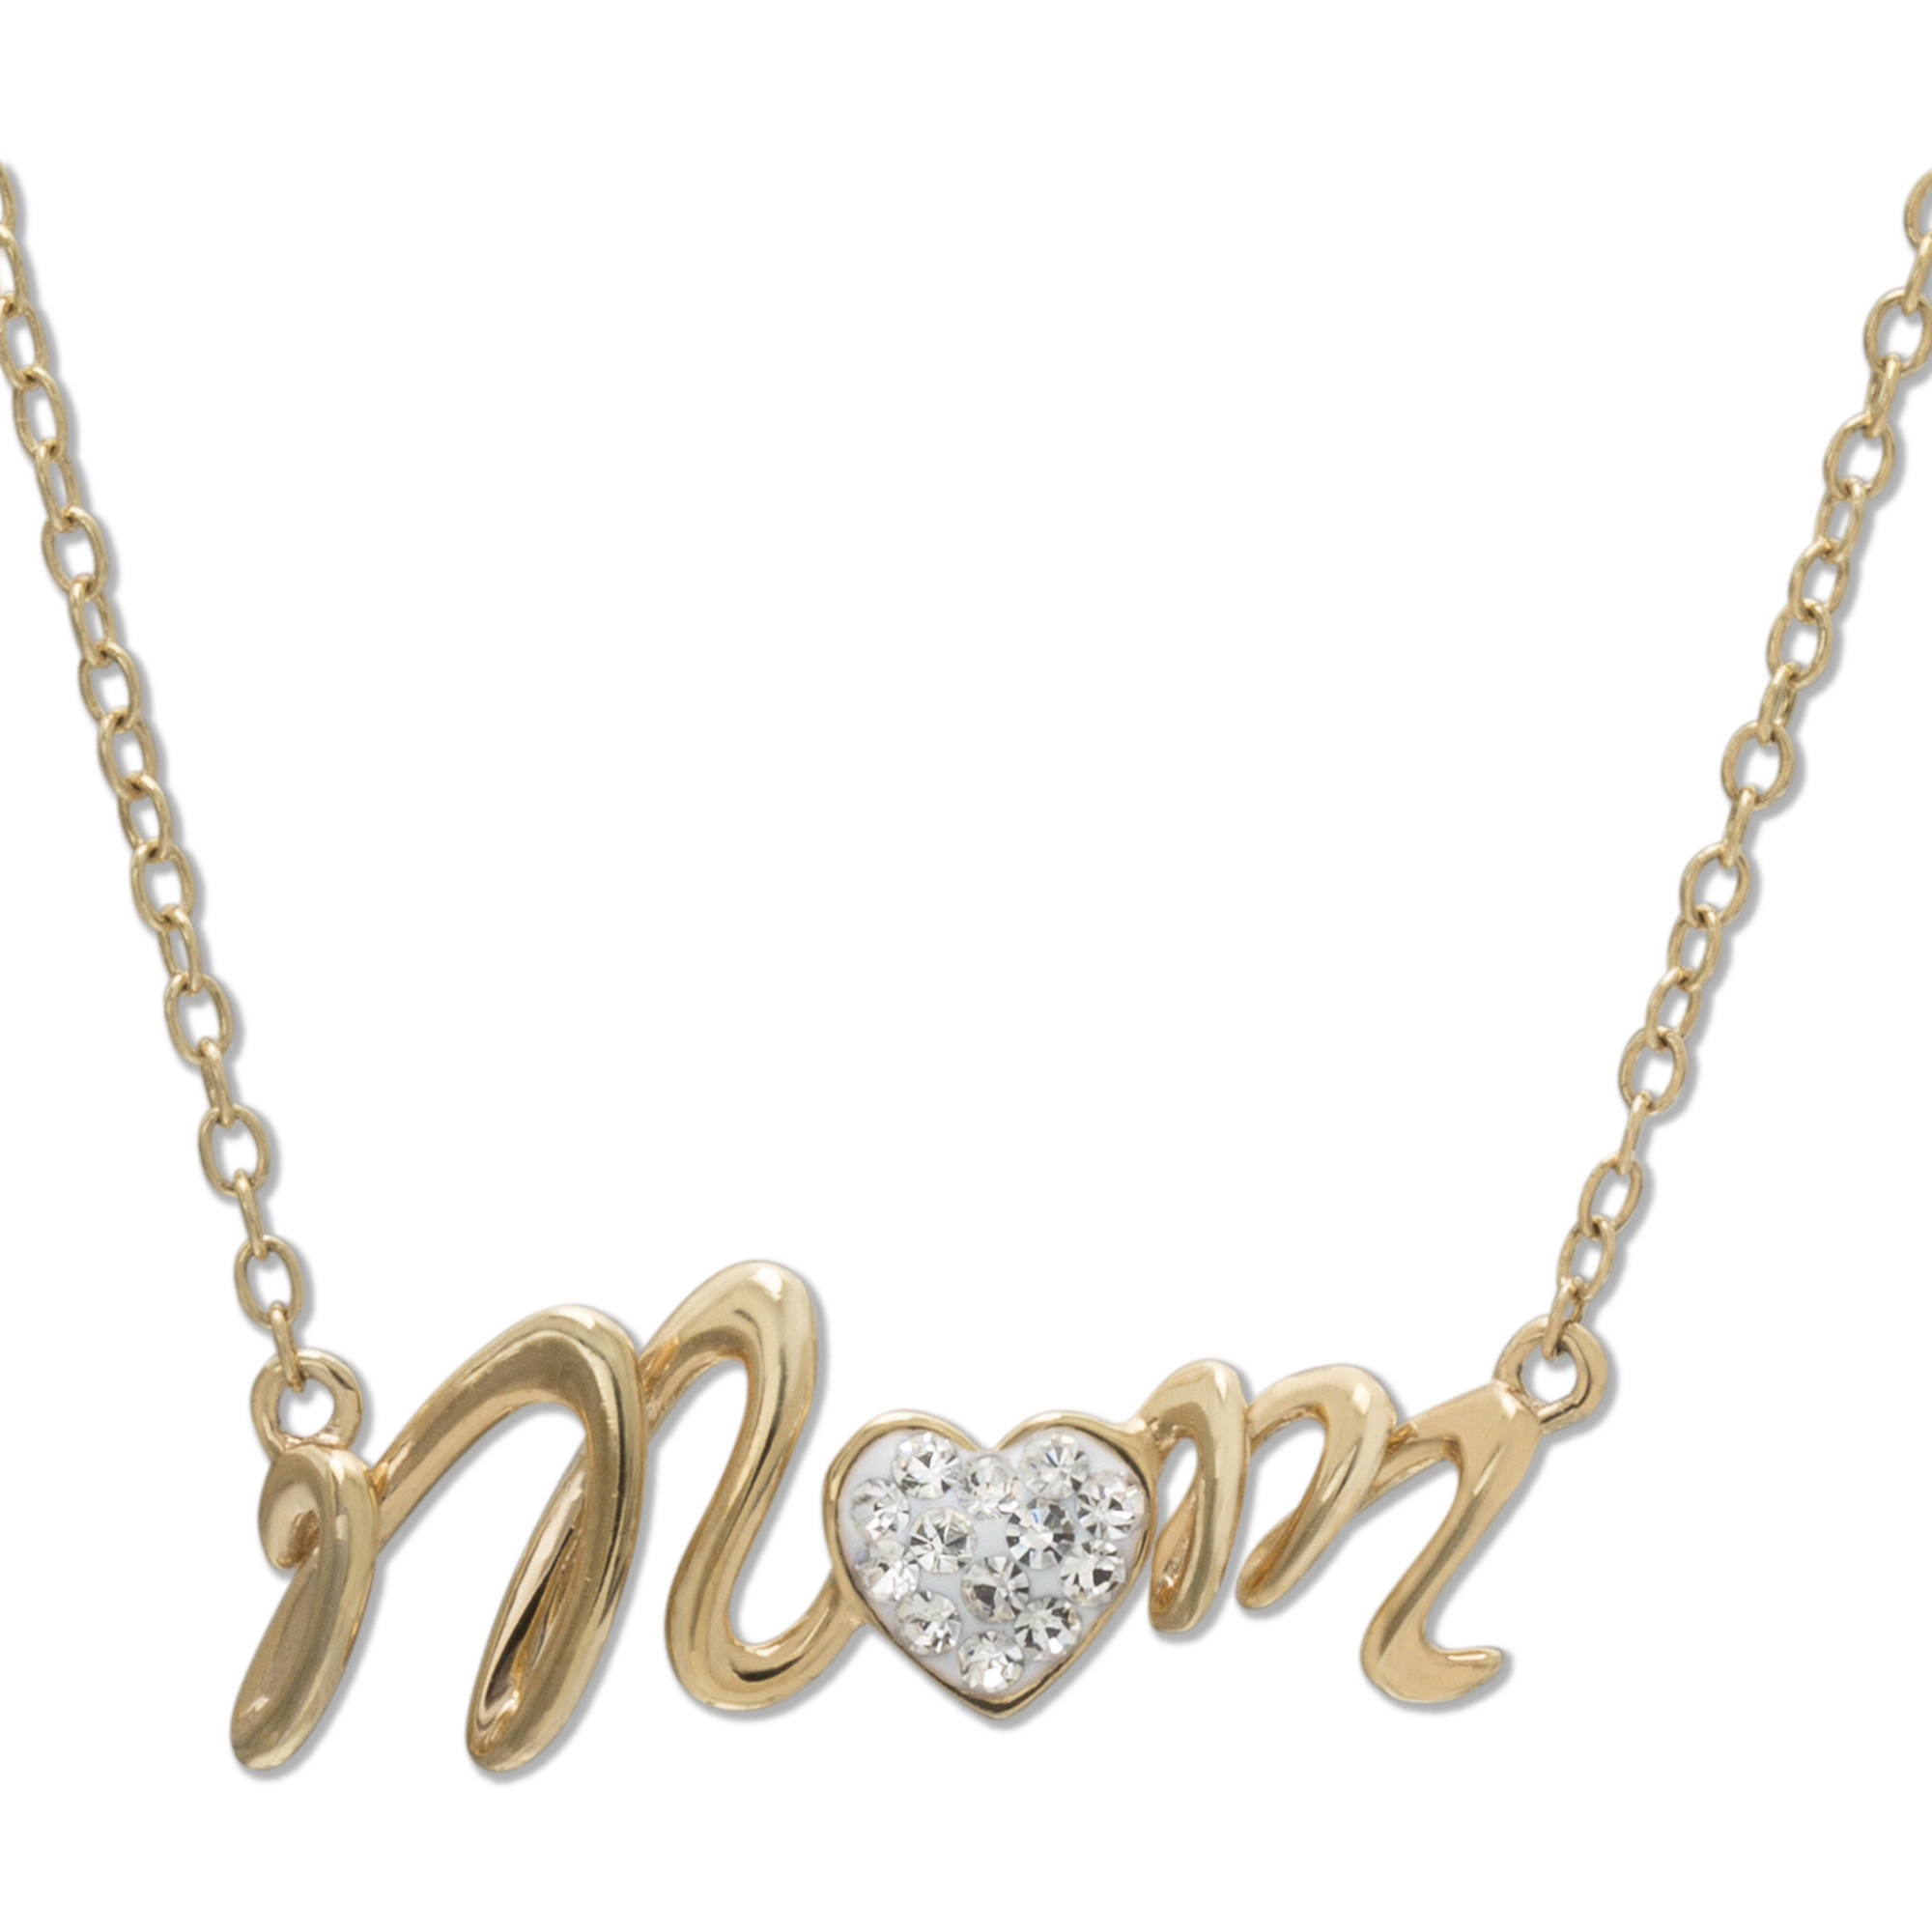 """Crystal 18kt Gold-Tone """"Mom"""" Heart Necklace, 18"""" Chain"""